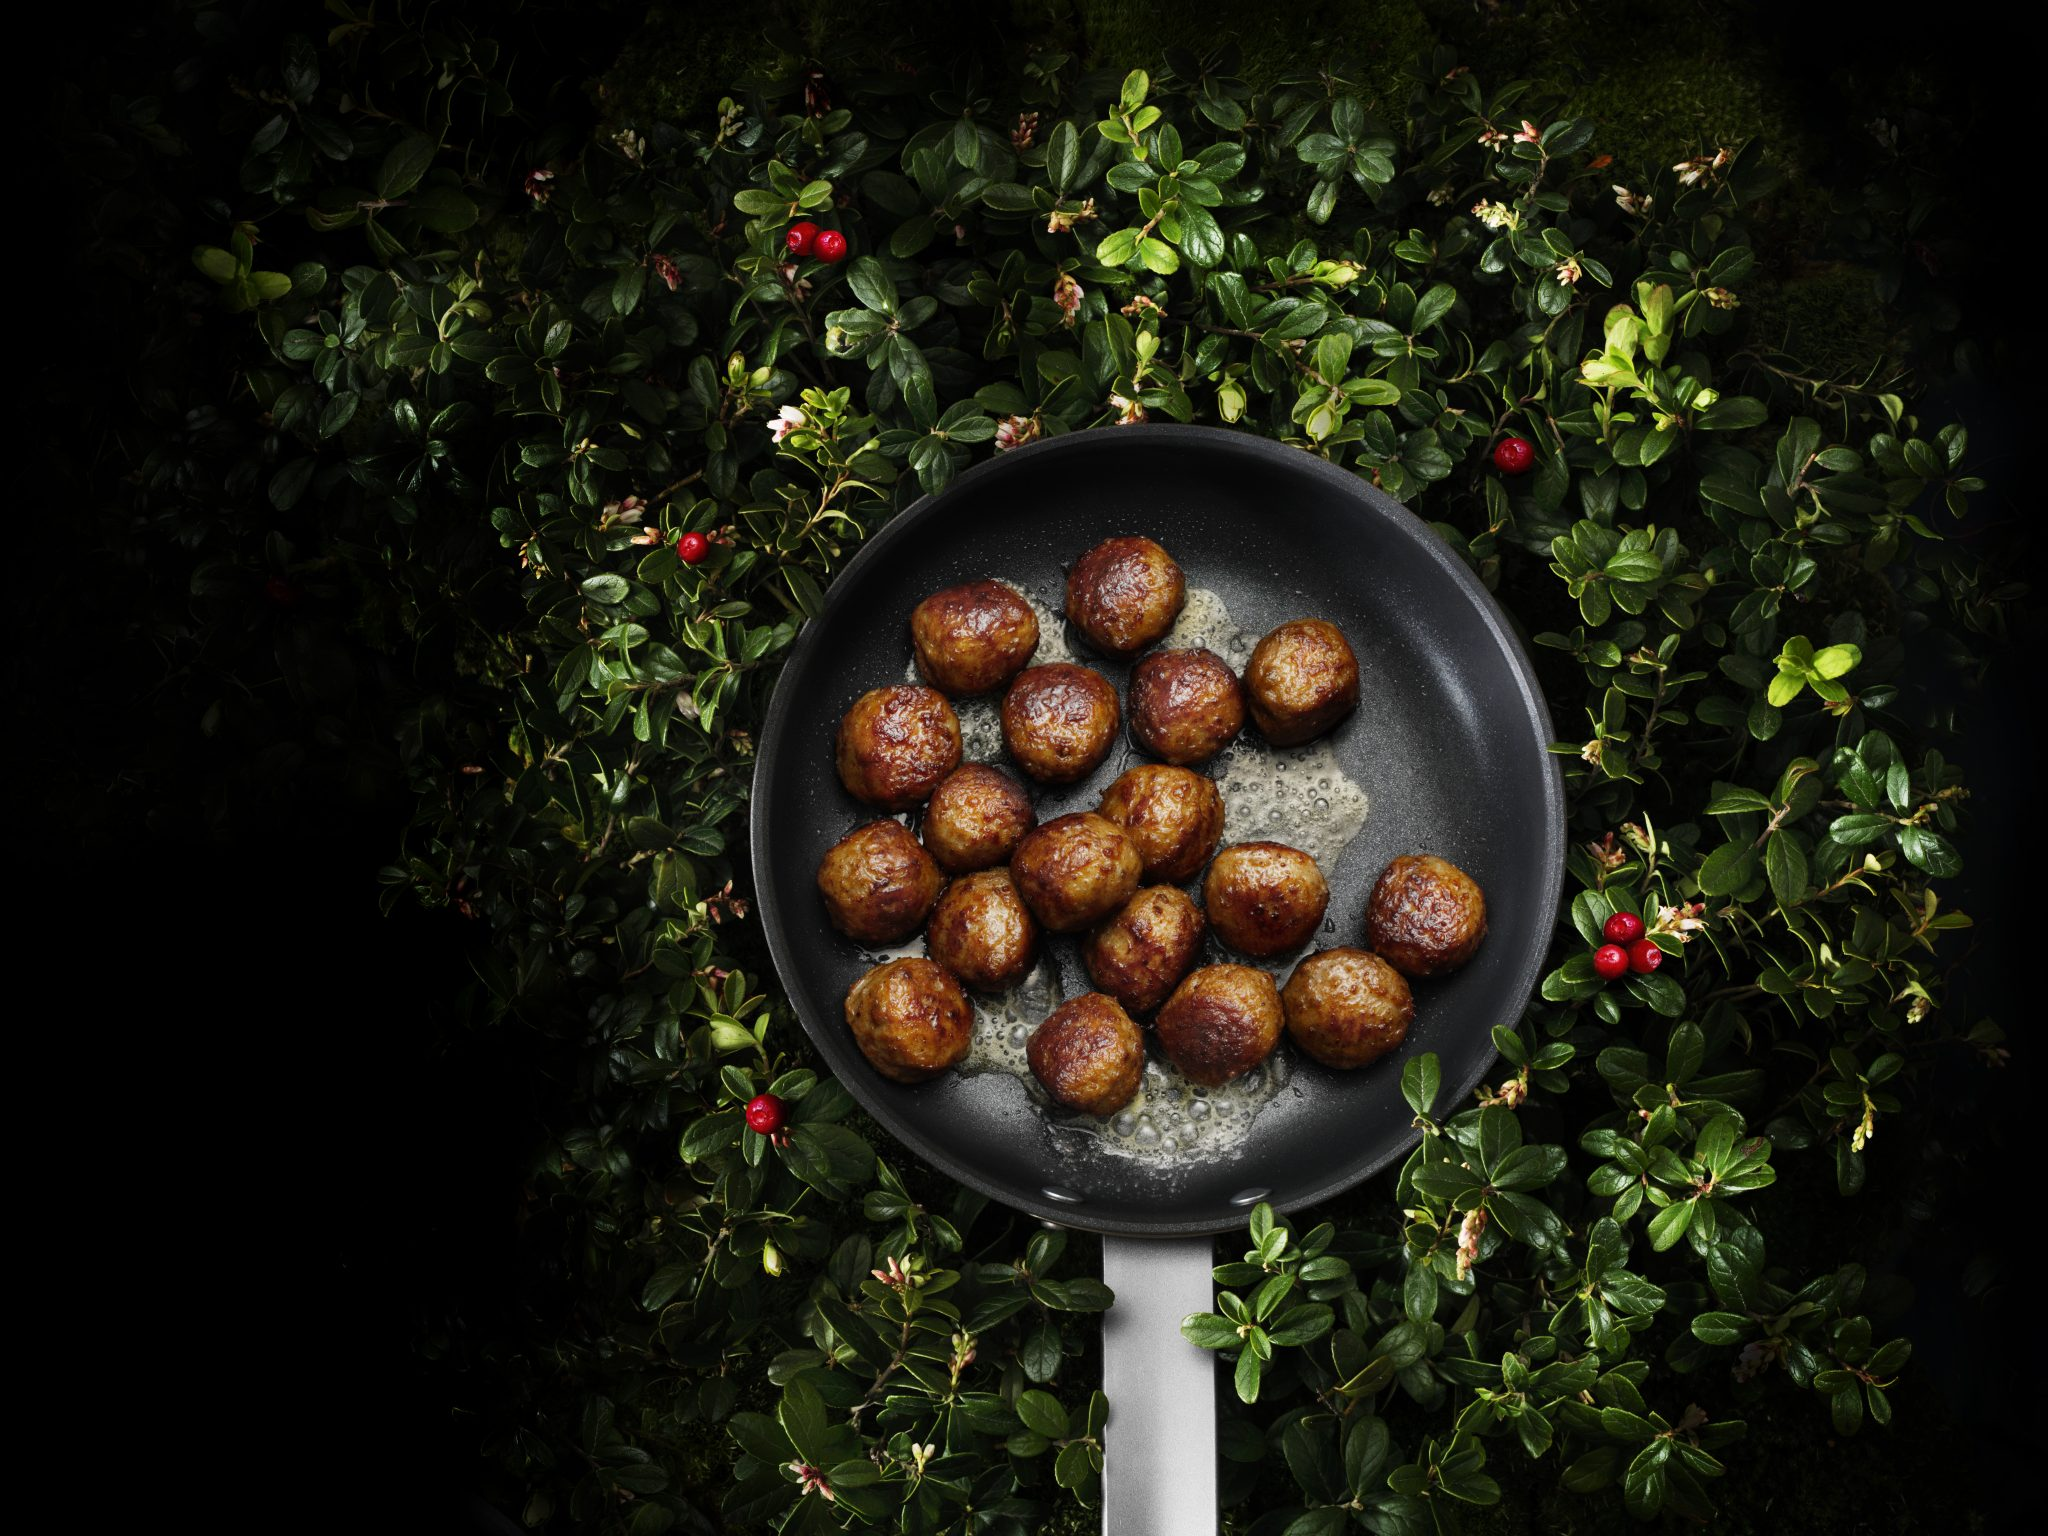 How to make Ikea's famous Swedish meatballs at home